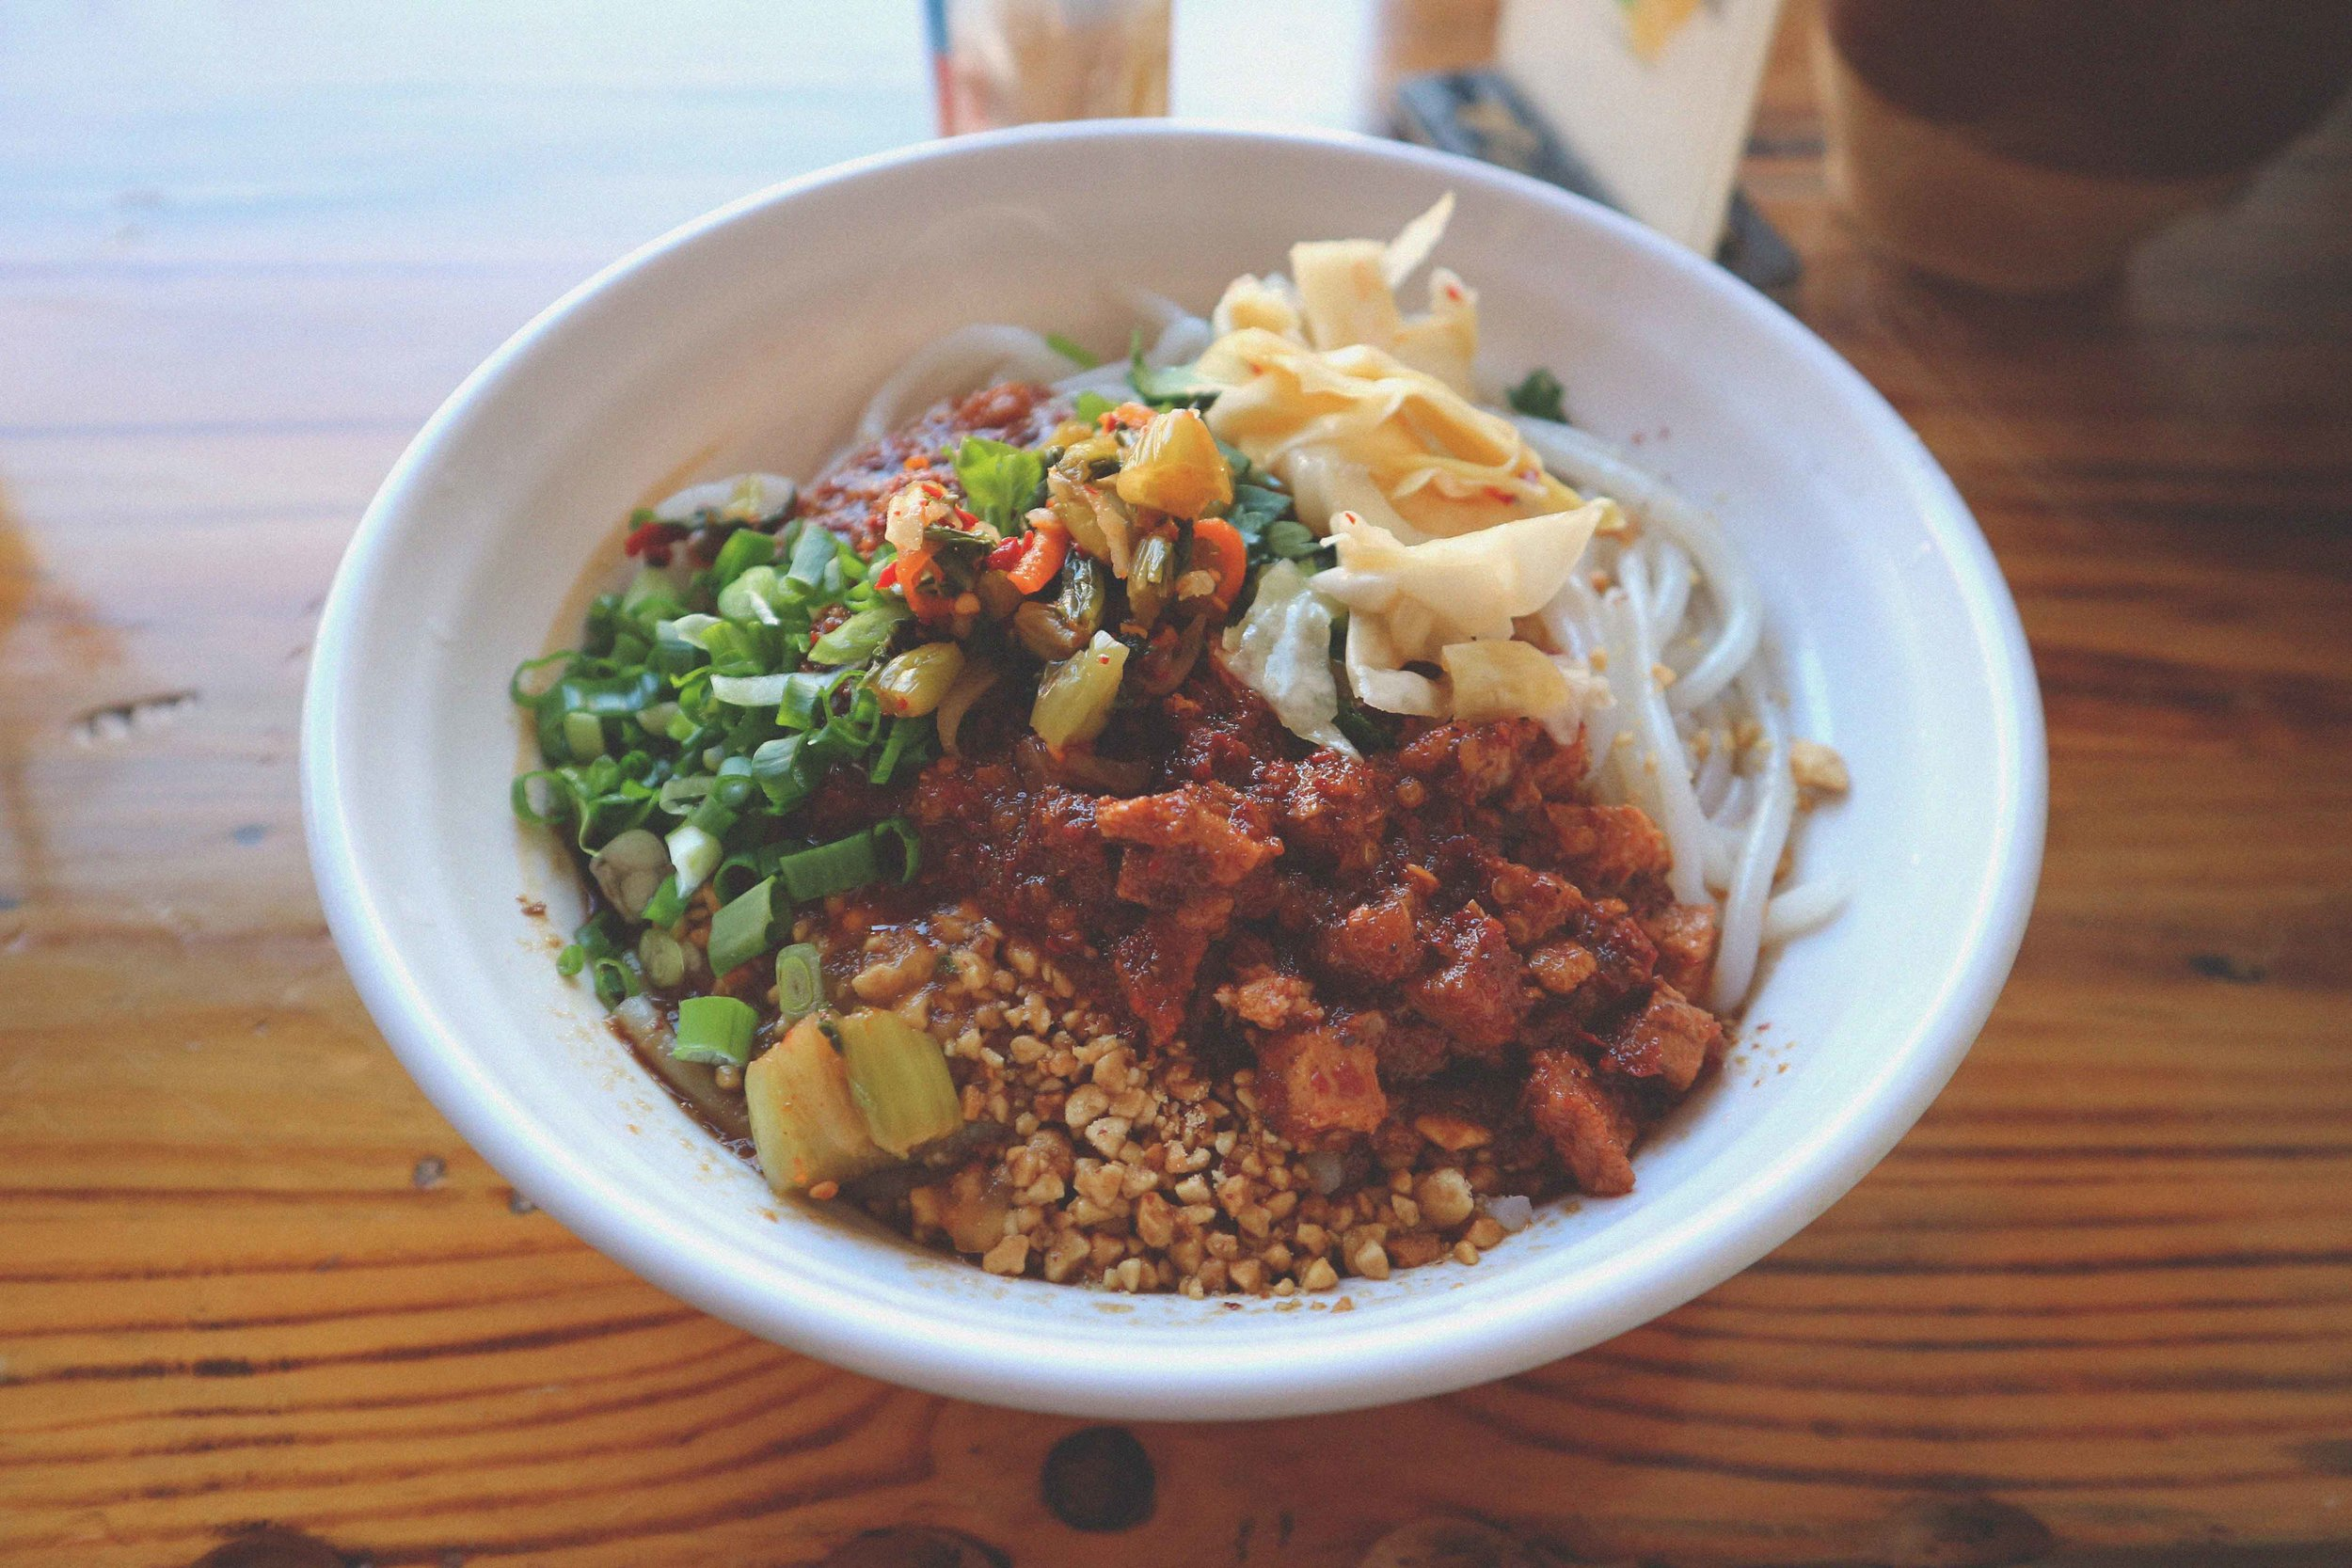 Delicious hand-made rice noodles